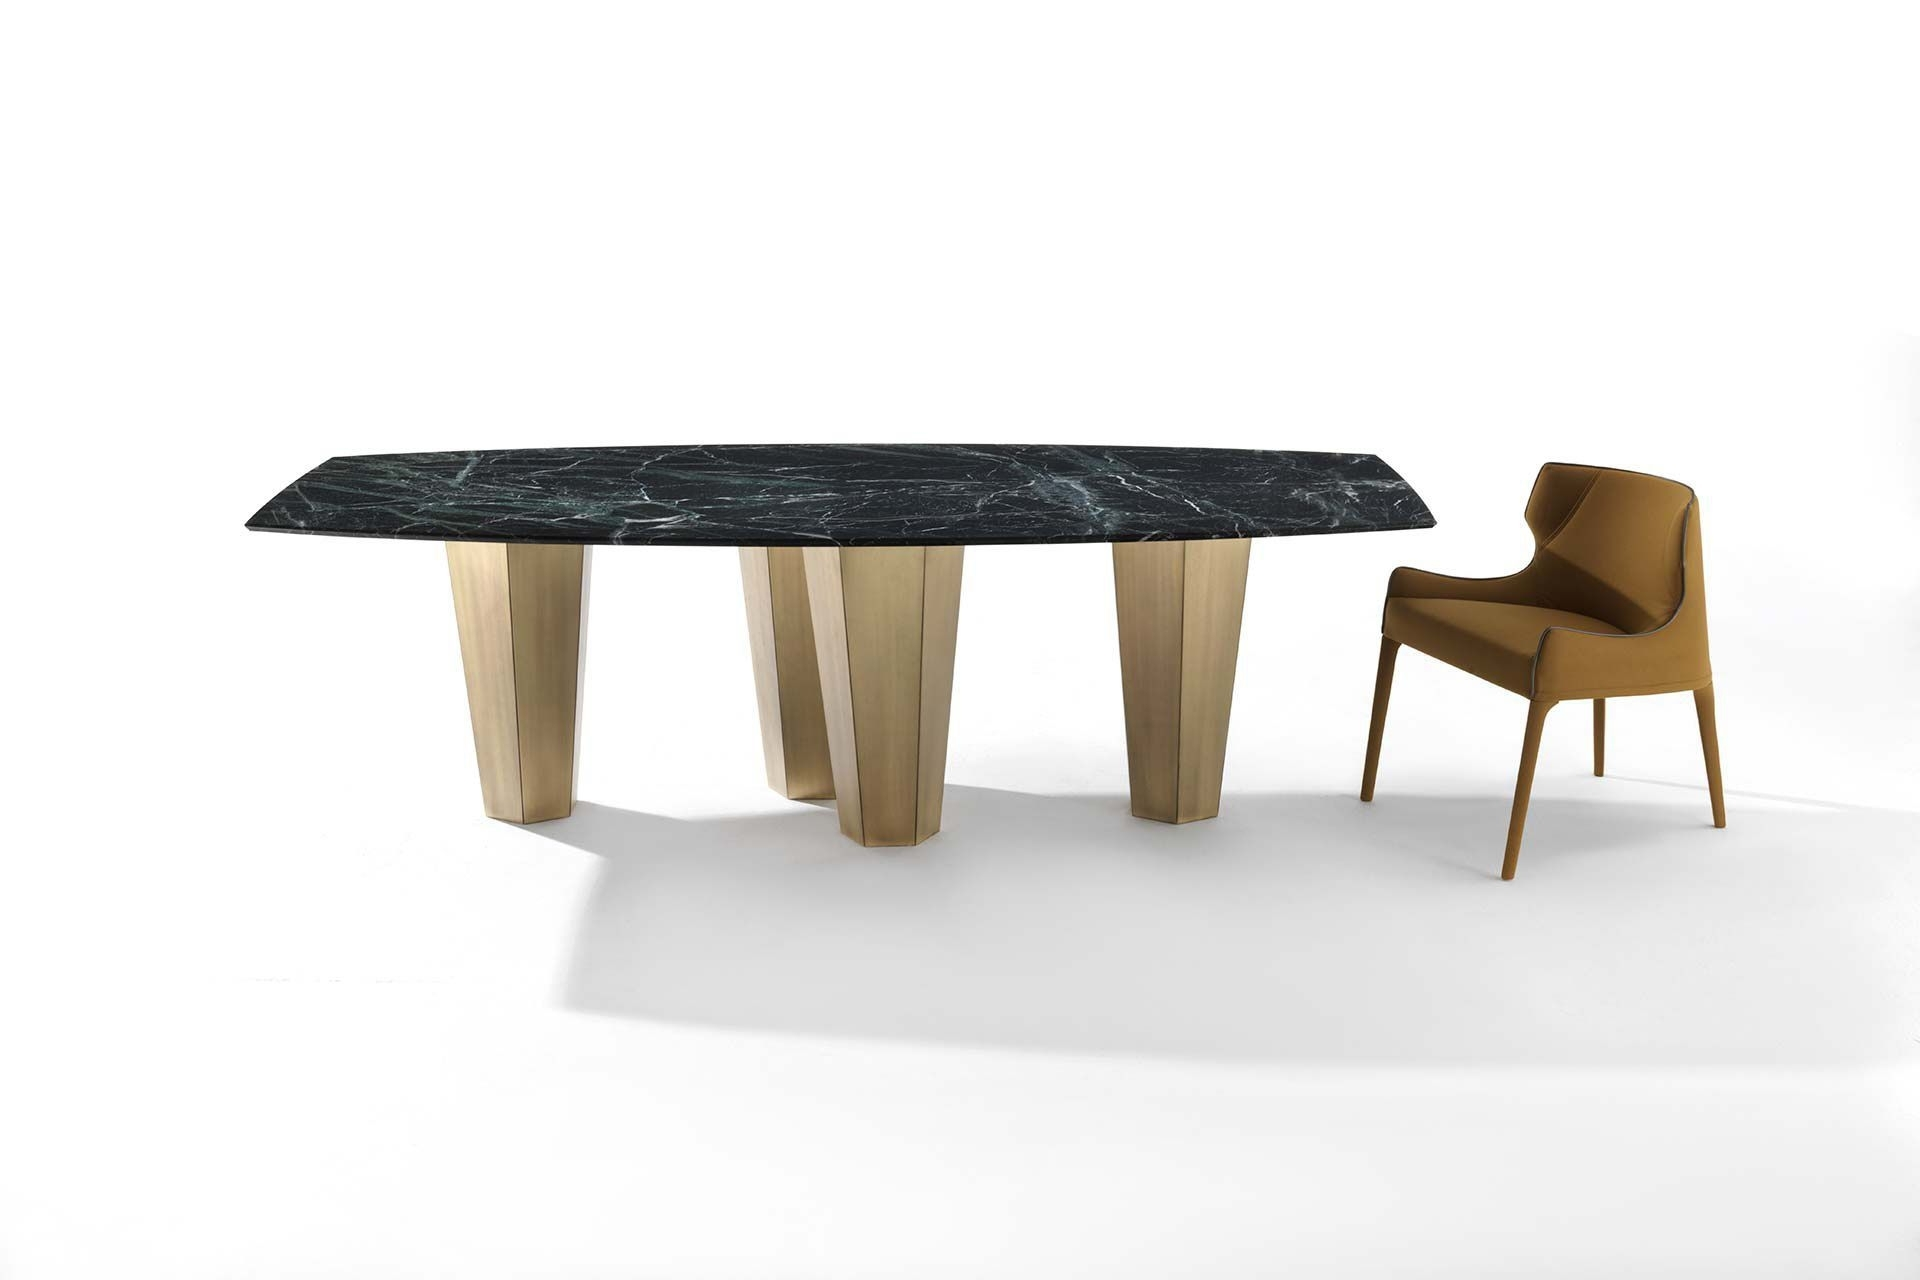 Contemporary Dining Table / Wooden / Marble / Contract – Parker Pertaining To Most Up To Date Parker Oval Marble Coffee Tables (View 10 of 20)